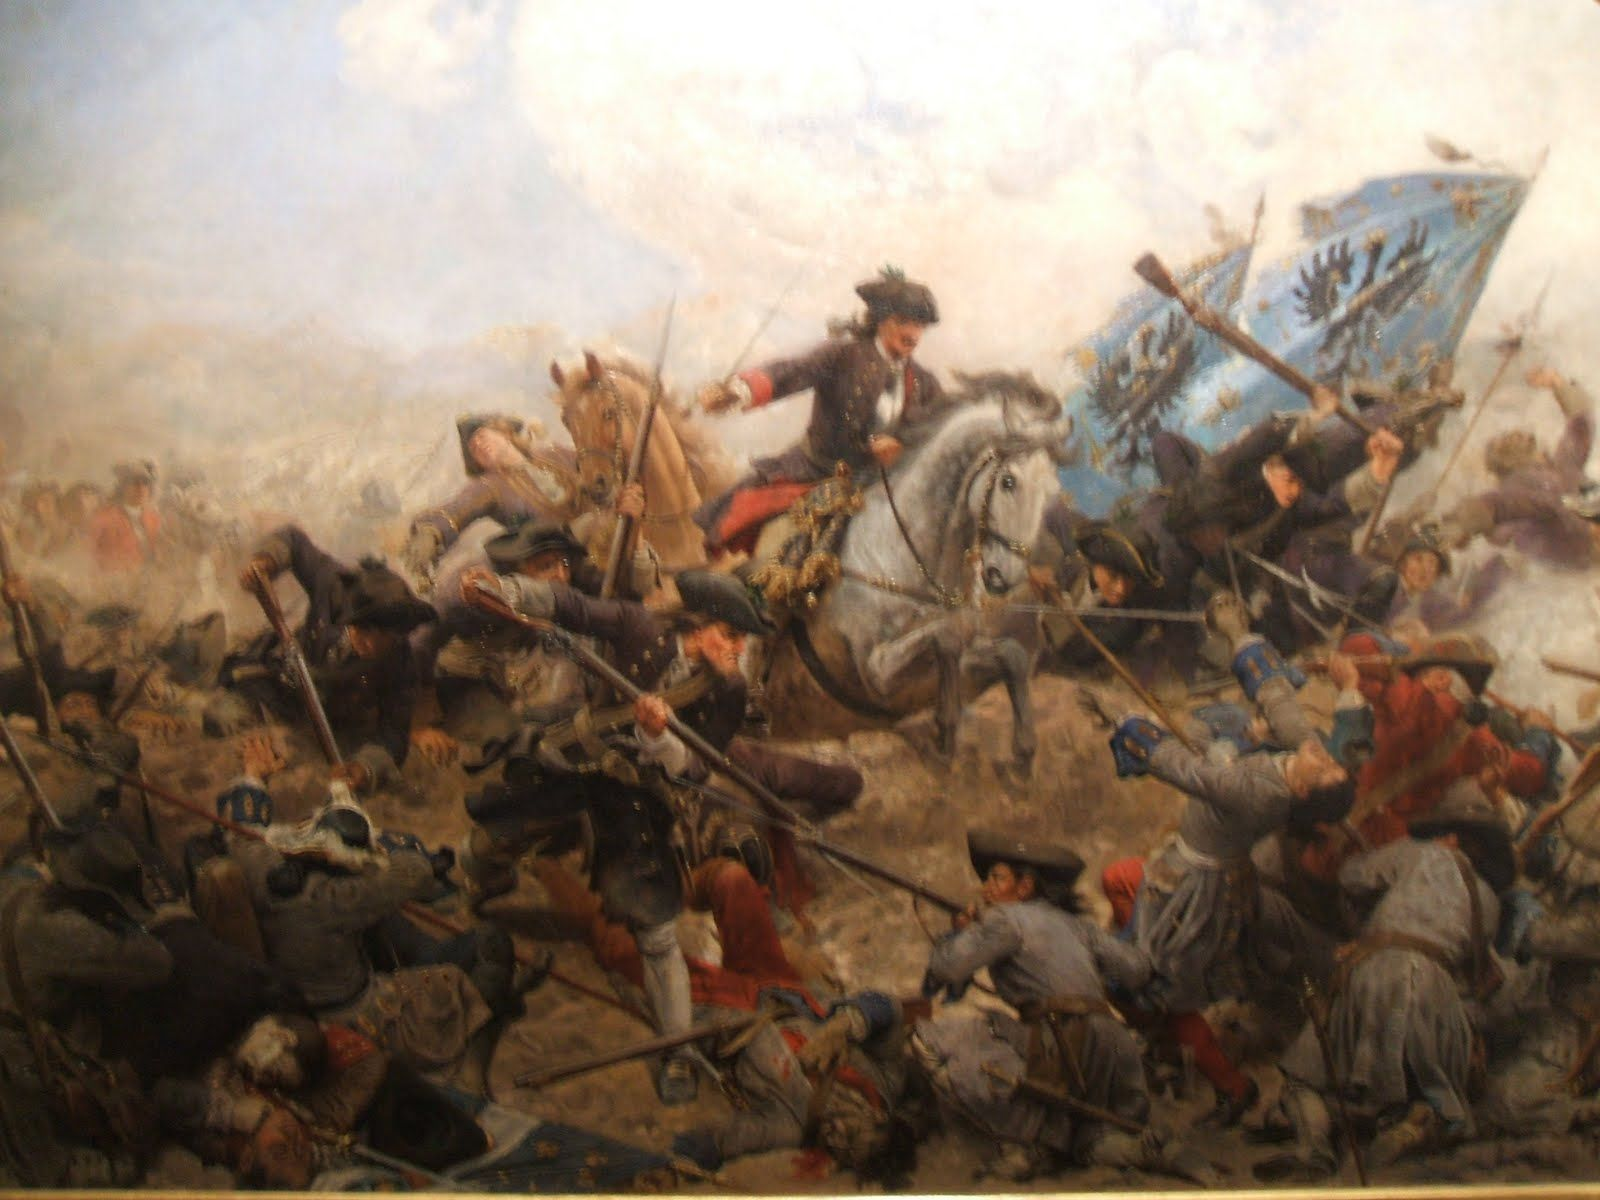 The War of the Spanish Succession happened in 1700 and dragged on ...